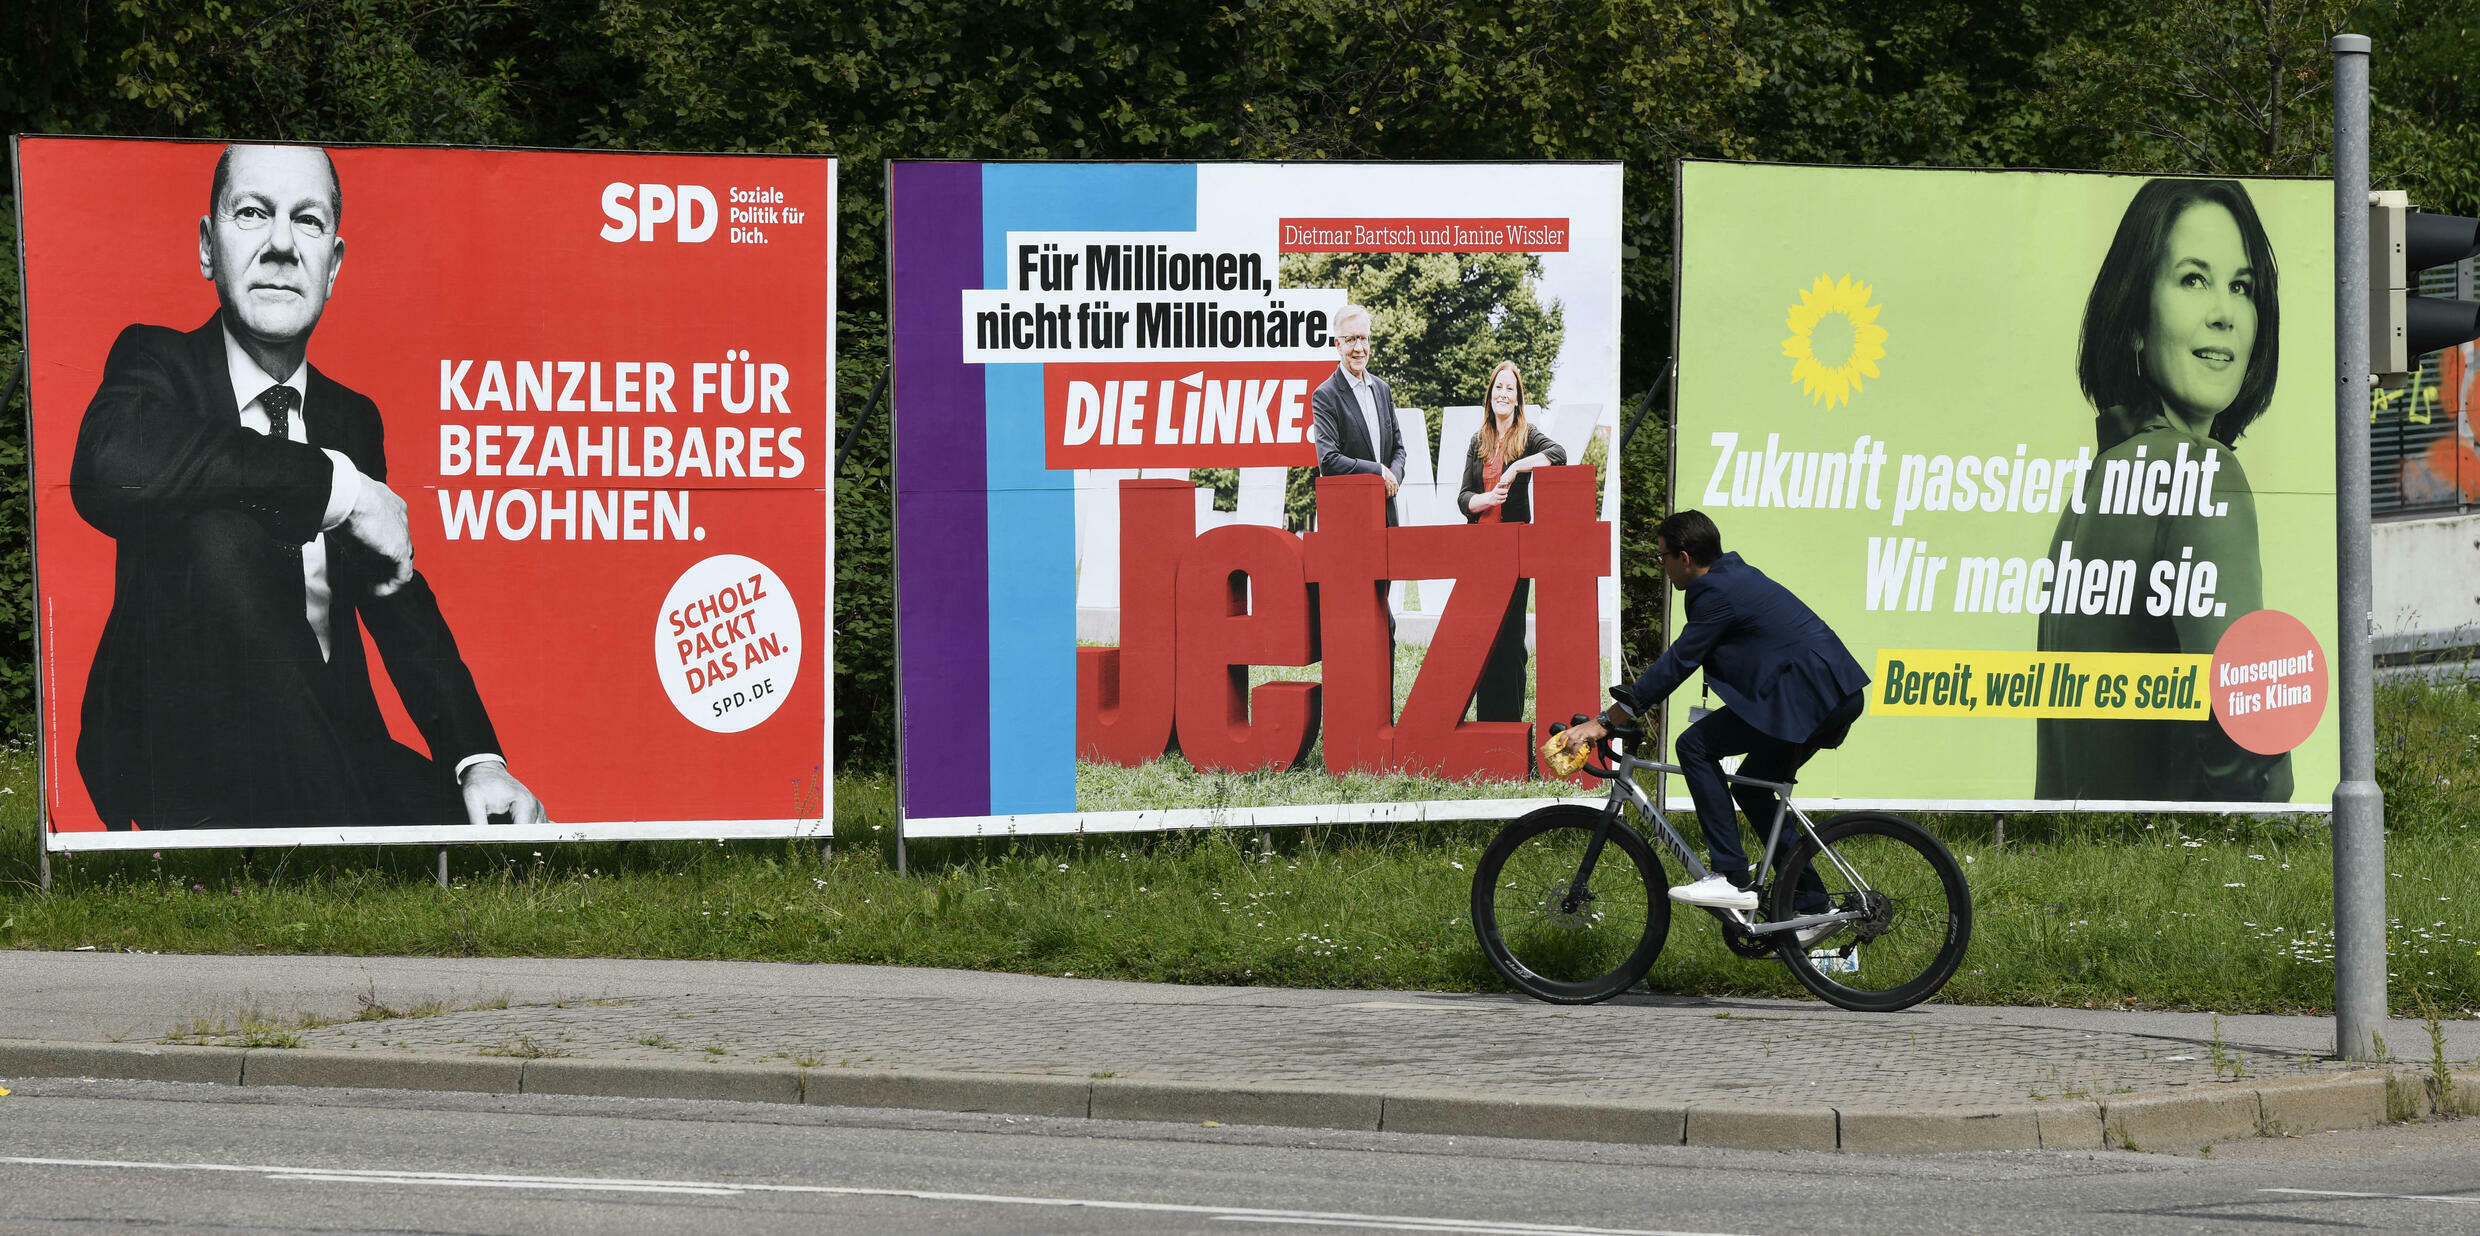 160921-elections-allemagne-m